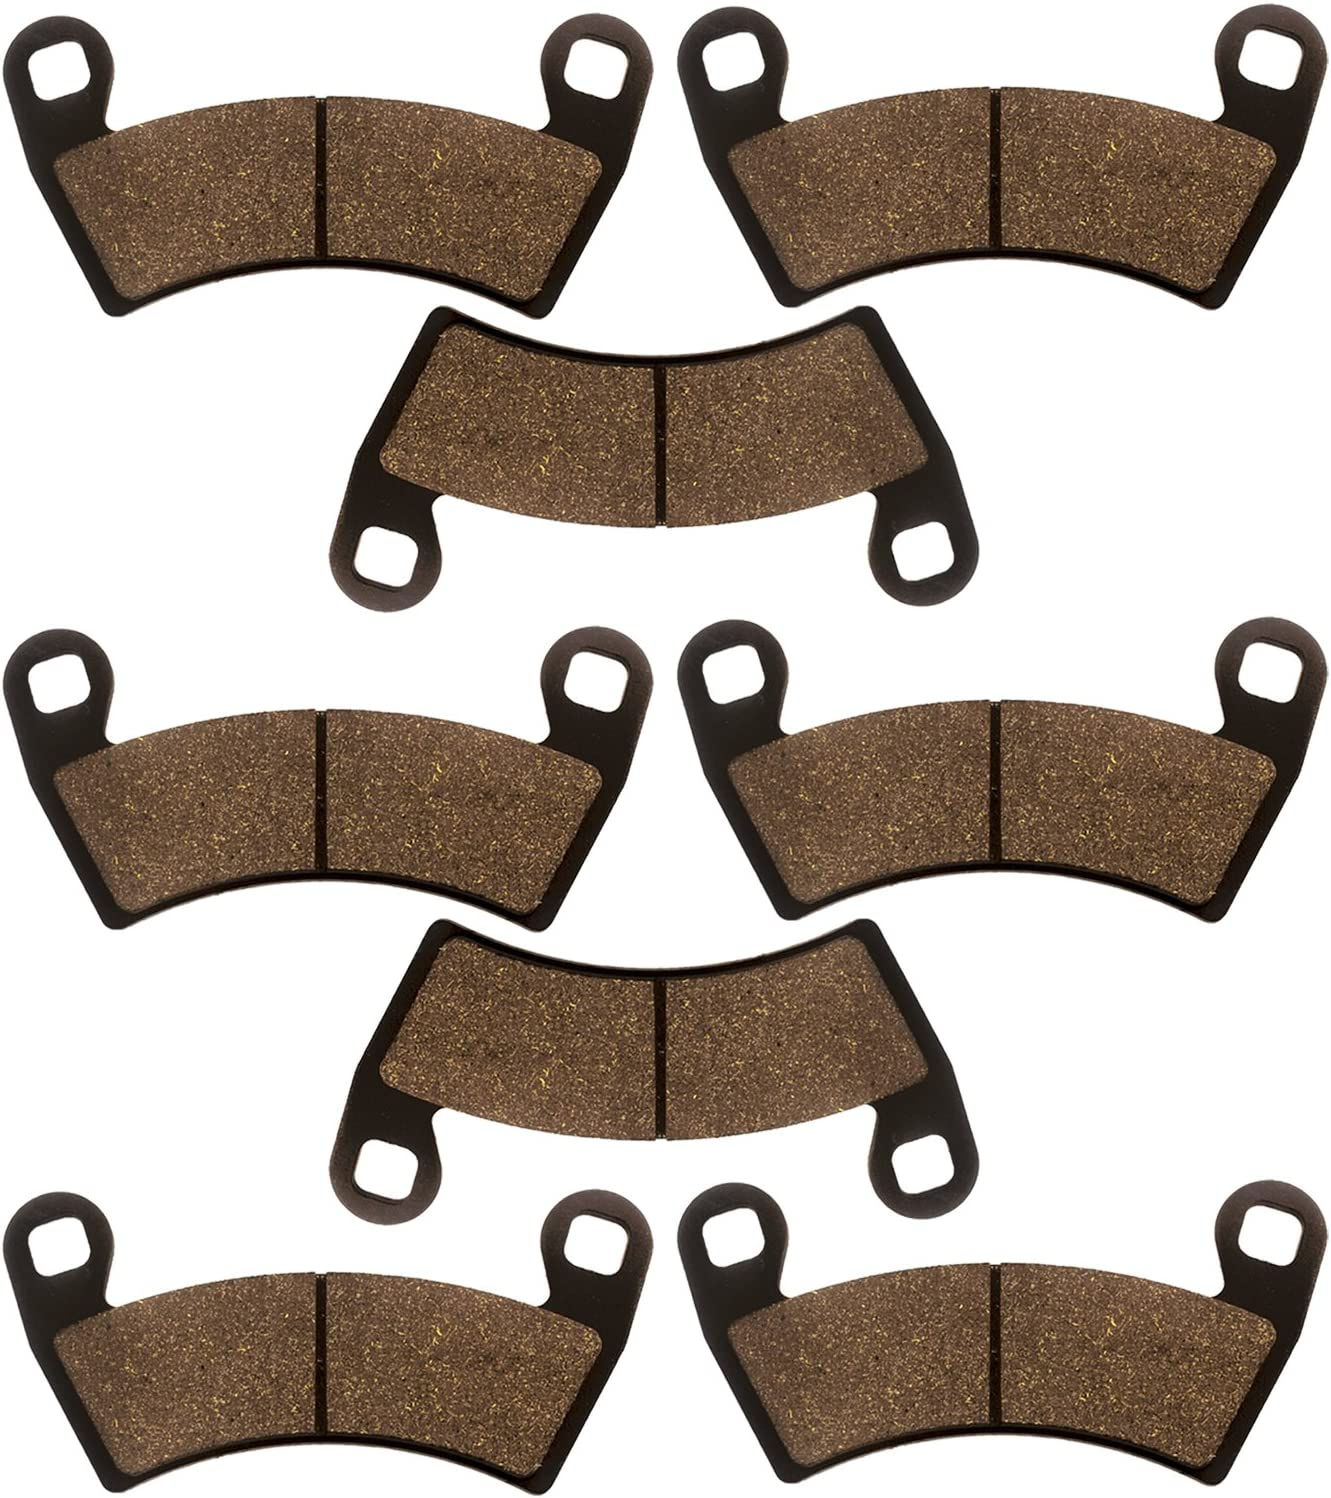 Front /& Rear Brake Pads  For POLARIS RZR XP 1000 2014-2017